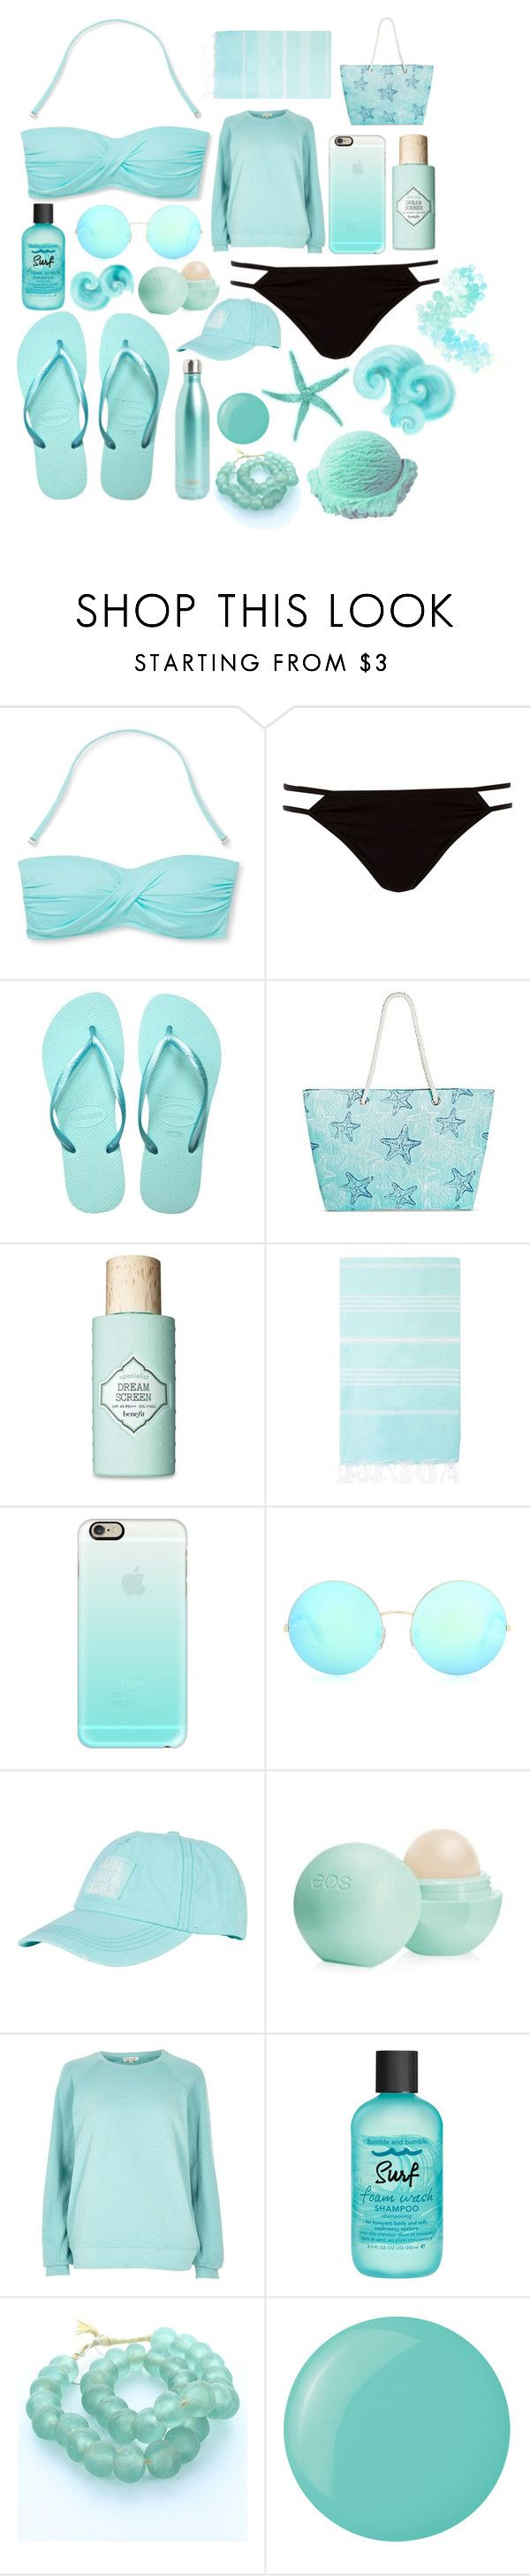 """""""Pool Party"""" by robinstill68 ❤ liked on Polyvore featuring Mossimo, River Island, Havaianas, Target, Benefit, Turkish-T, Casetify, Victoria Beckham, Billabong and Eos"""